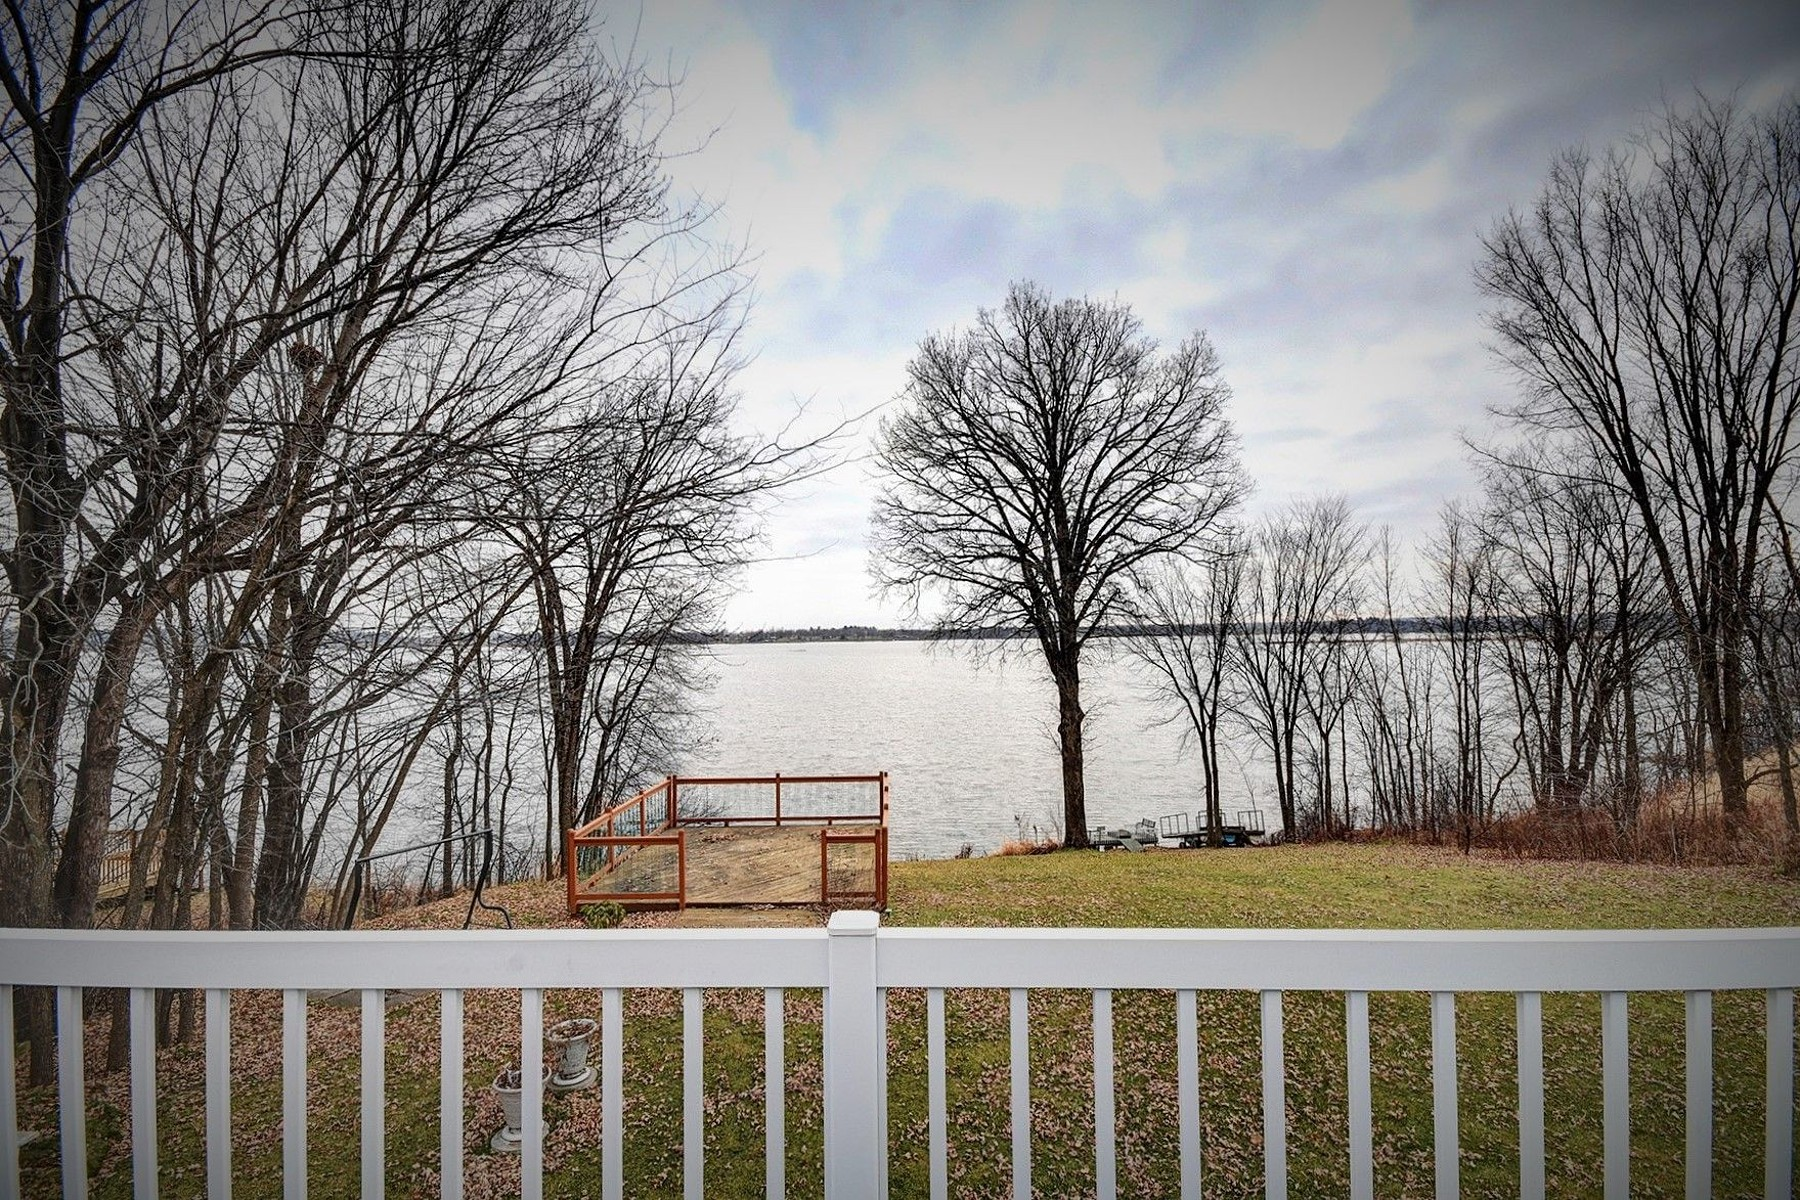 Property For Sale at Papineauville, Outaouais